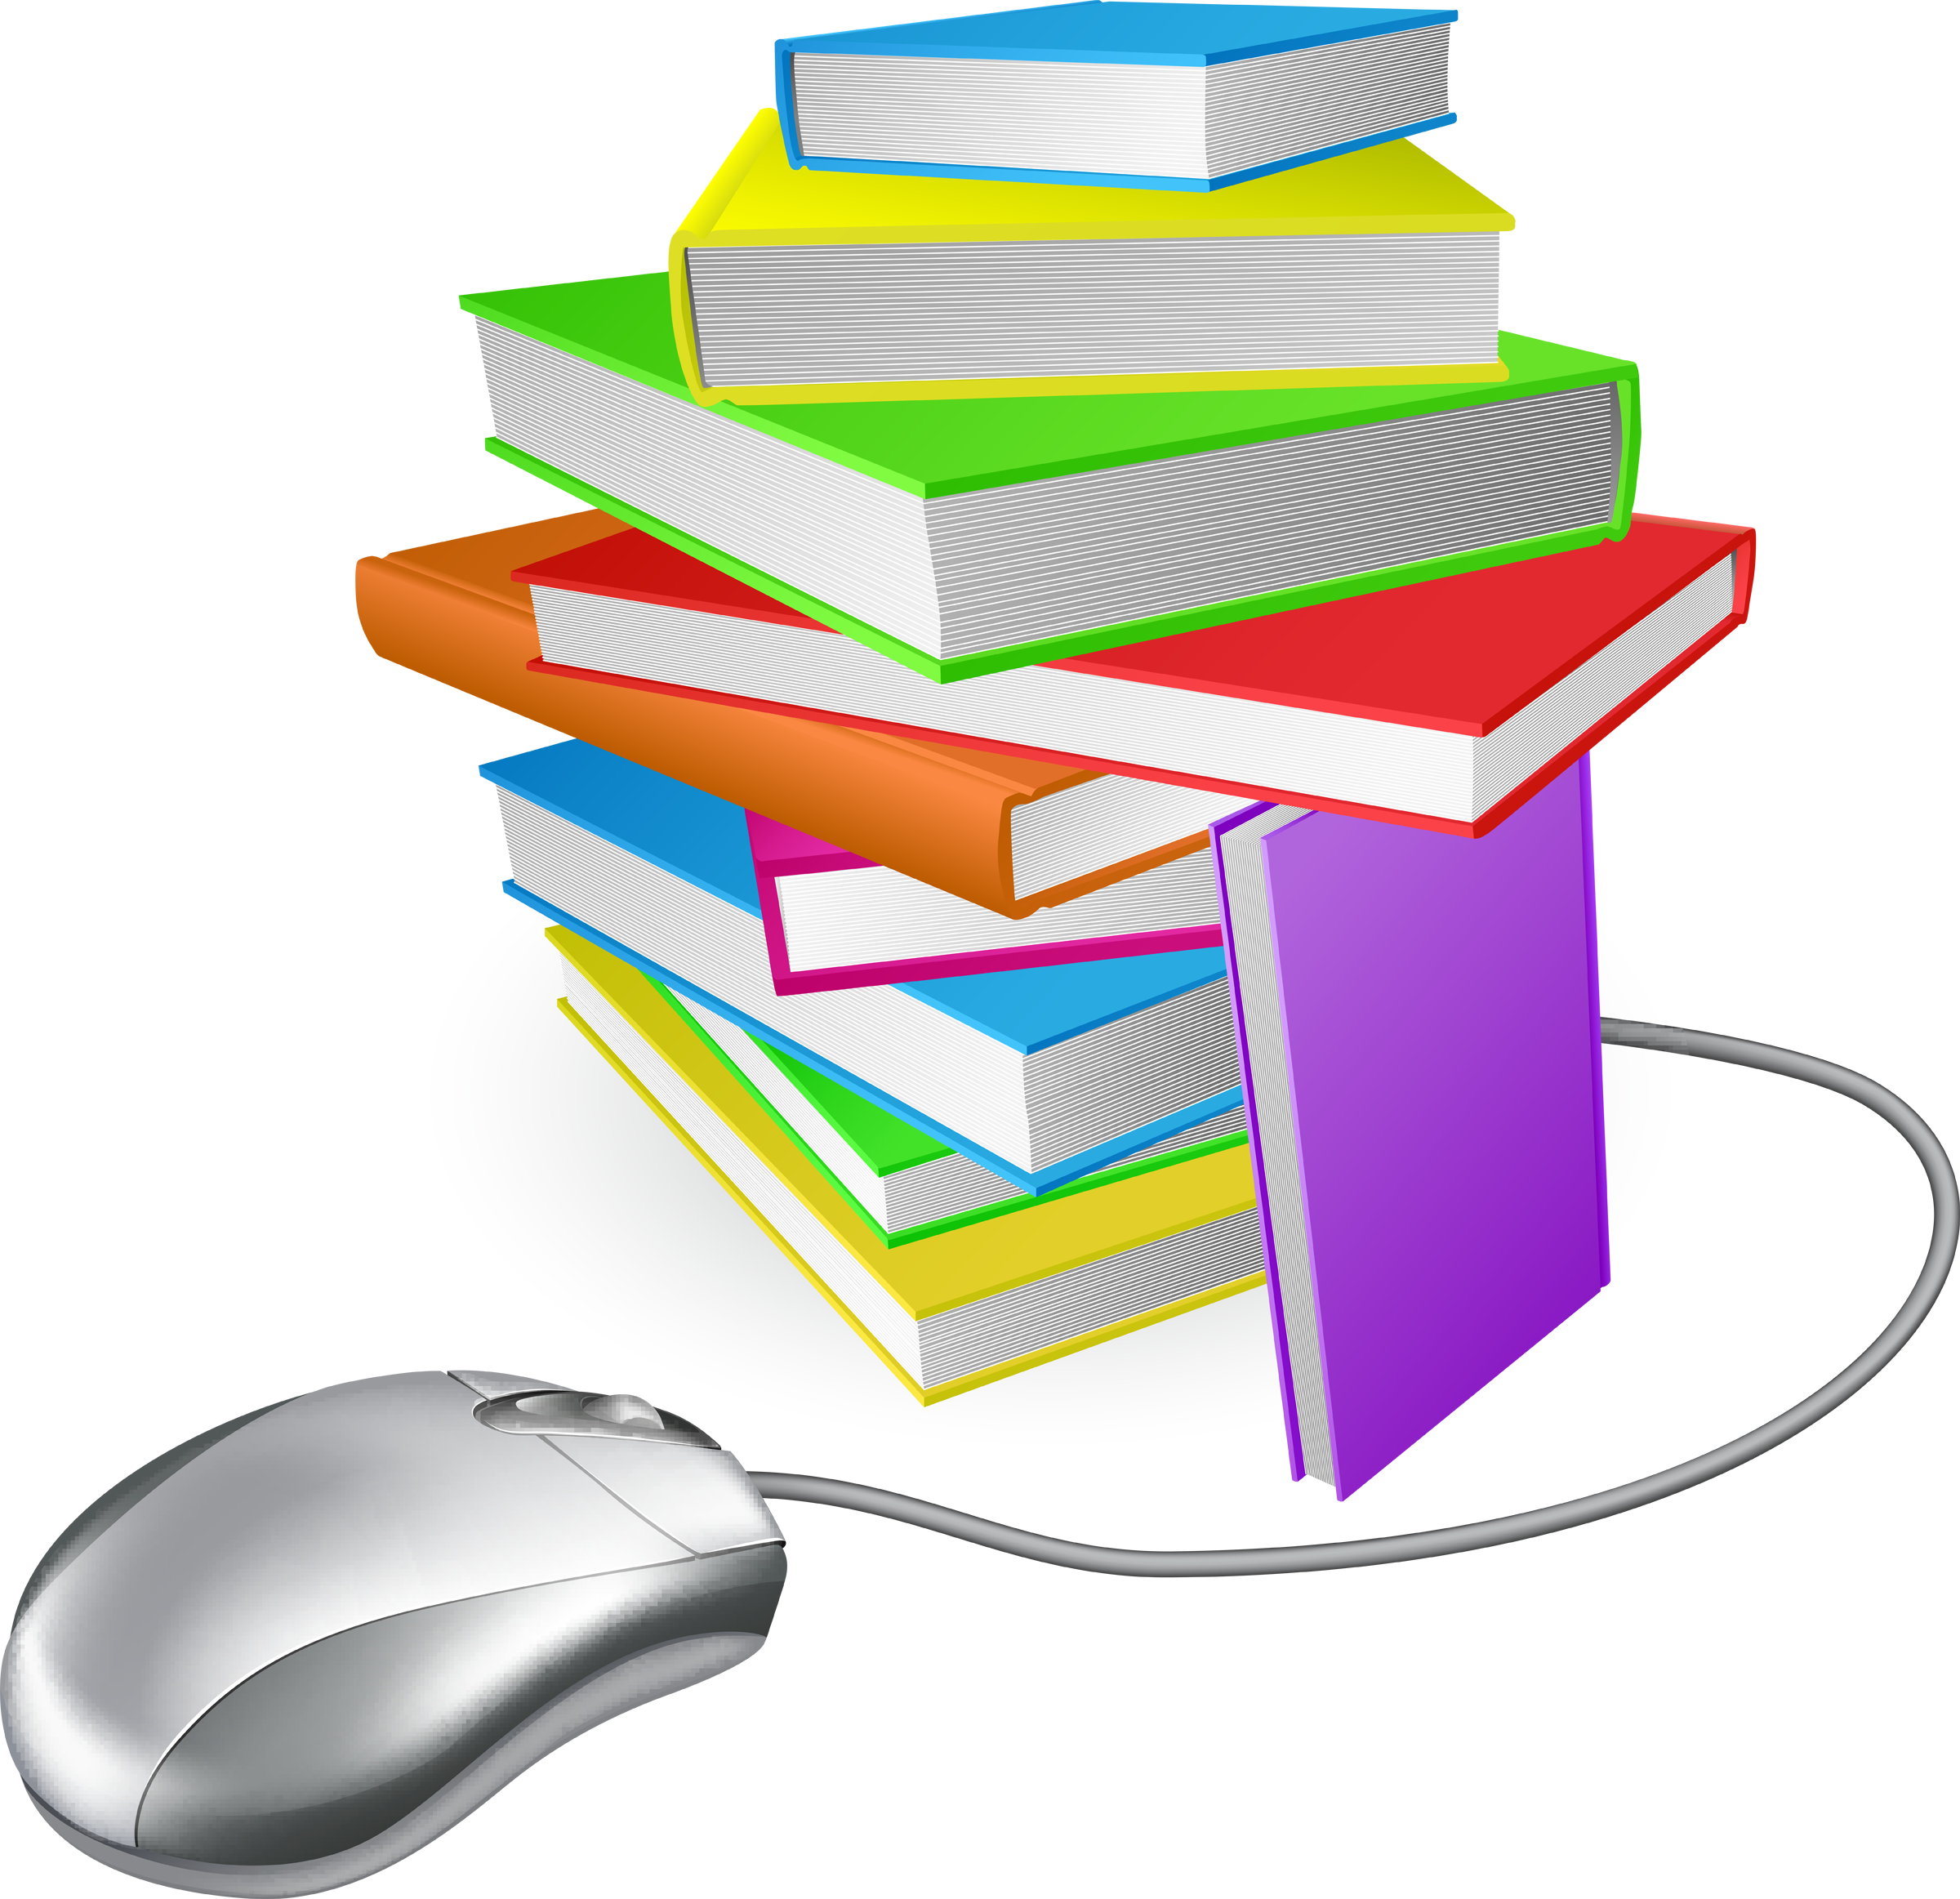 Clipart homework stack. Virtual library notes keeping